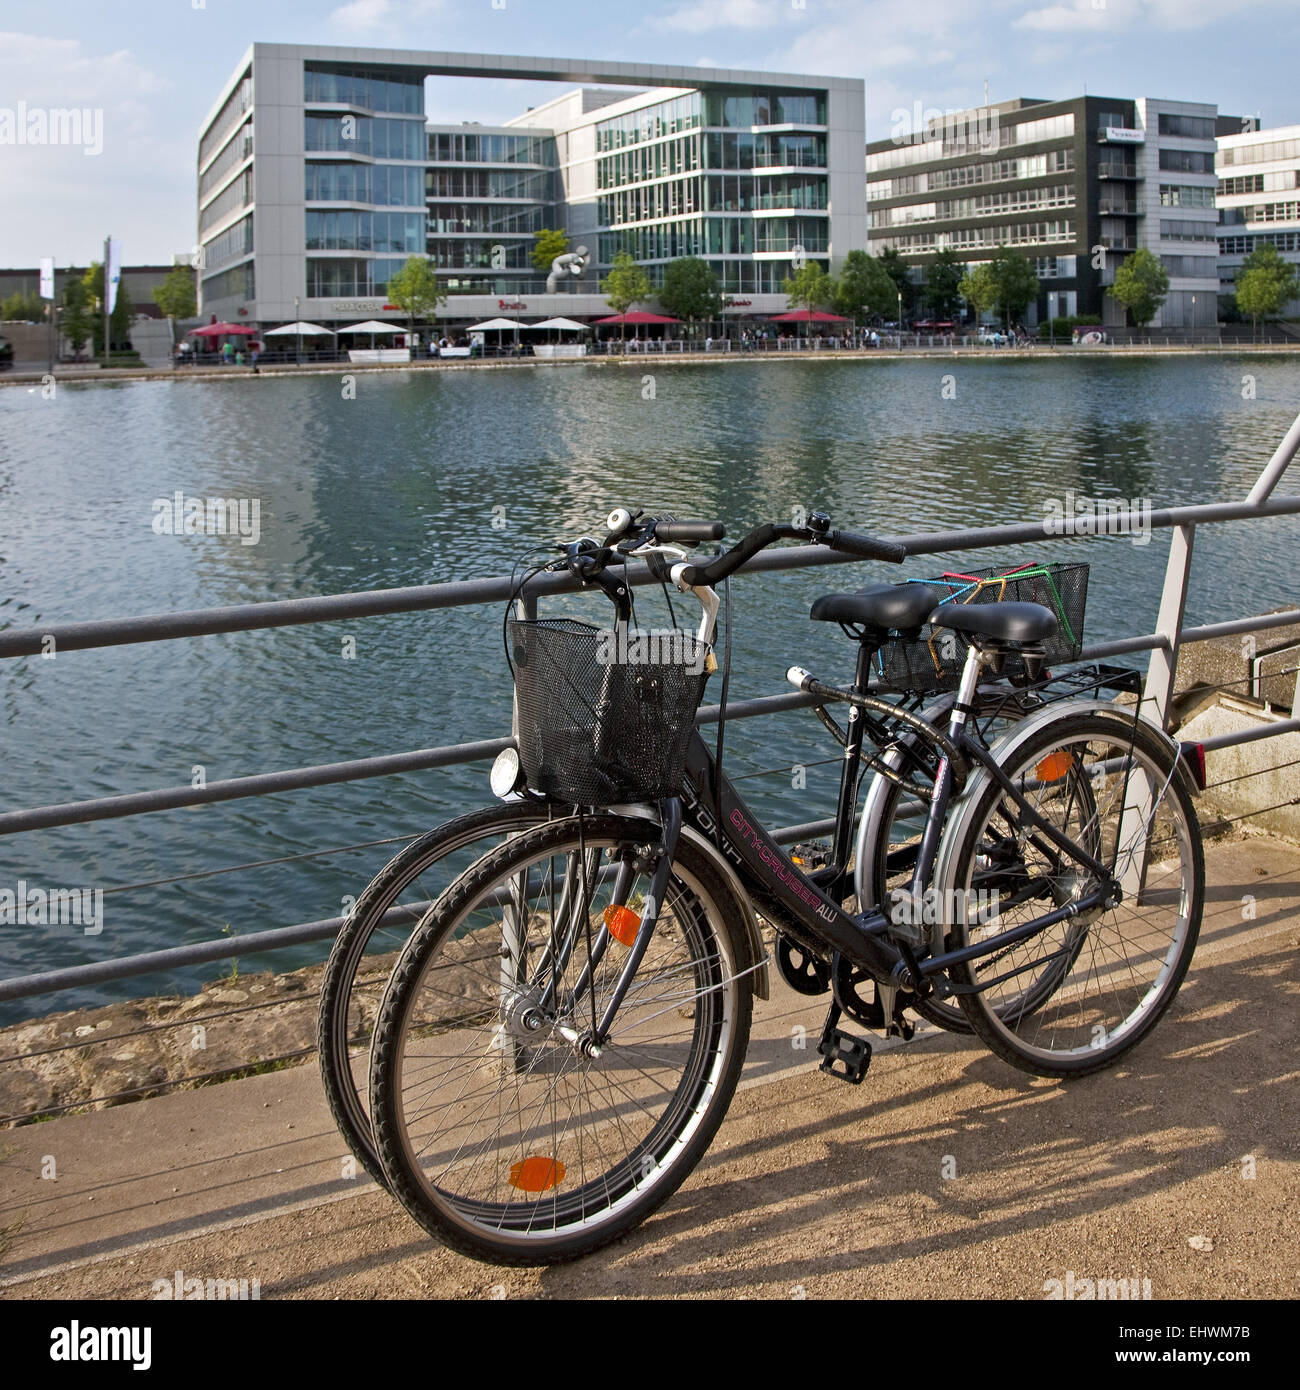 Two bikes, Duisburg inner Habour, Germany. - Stock Image